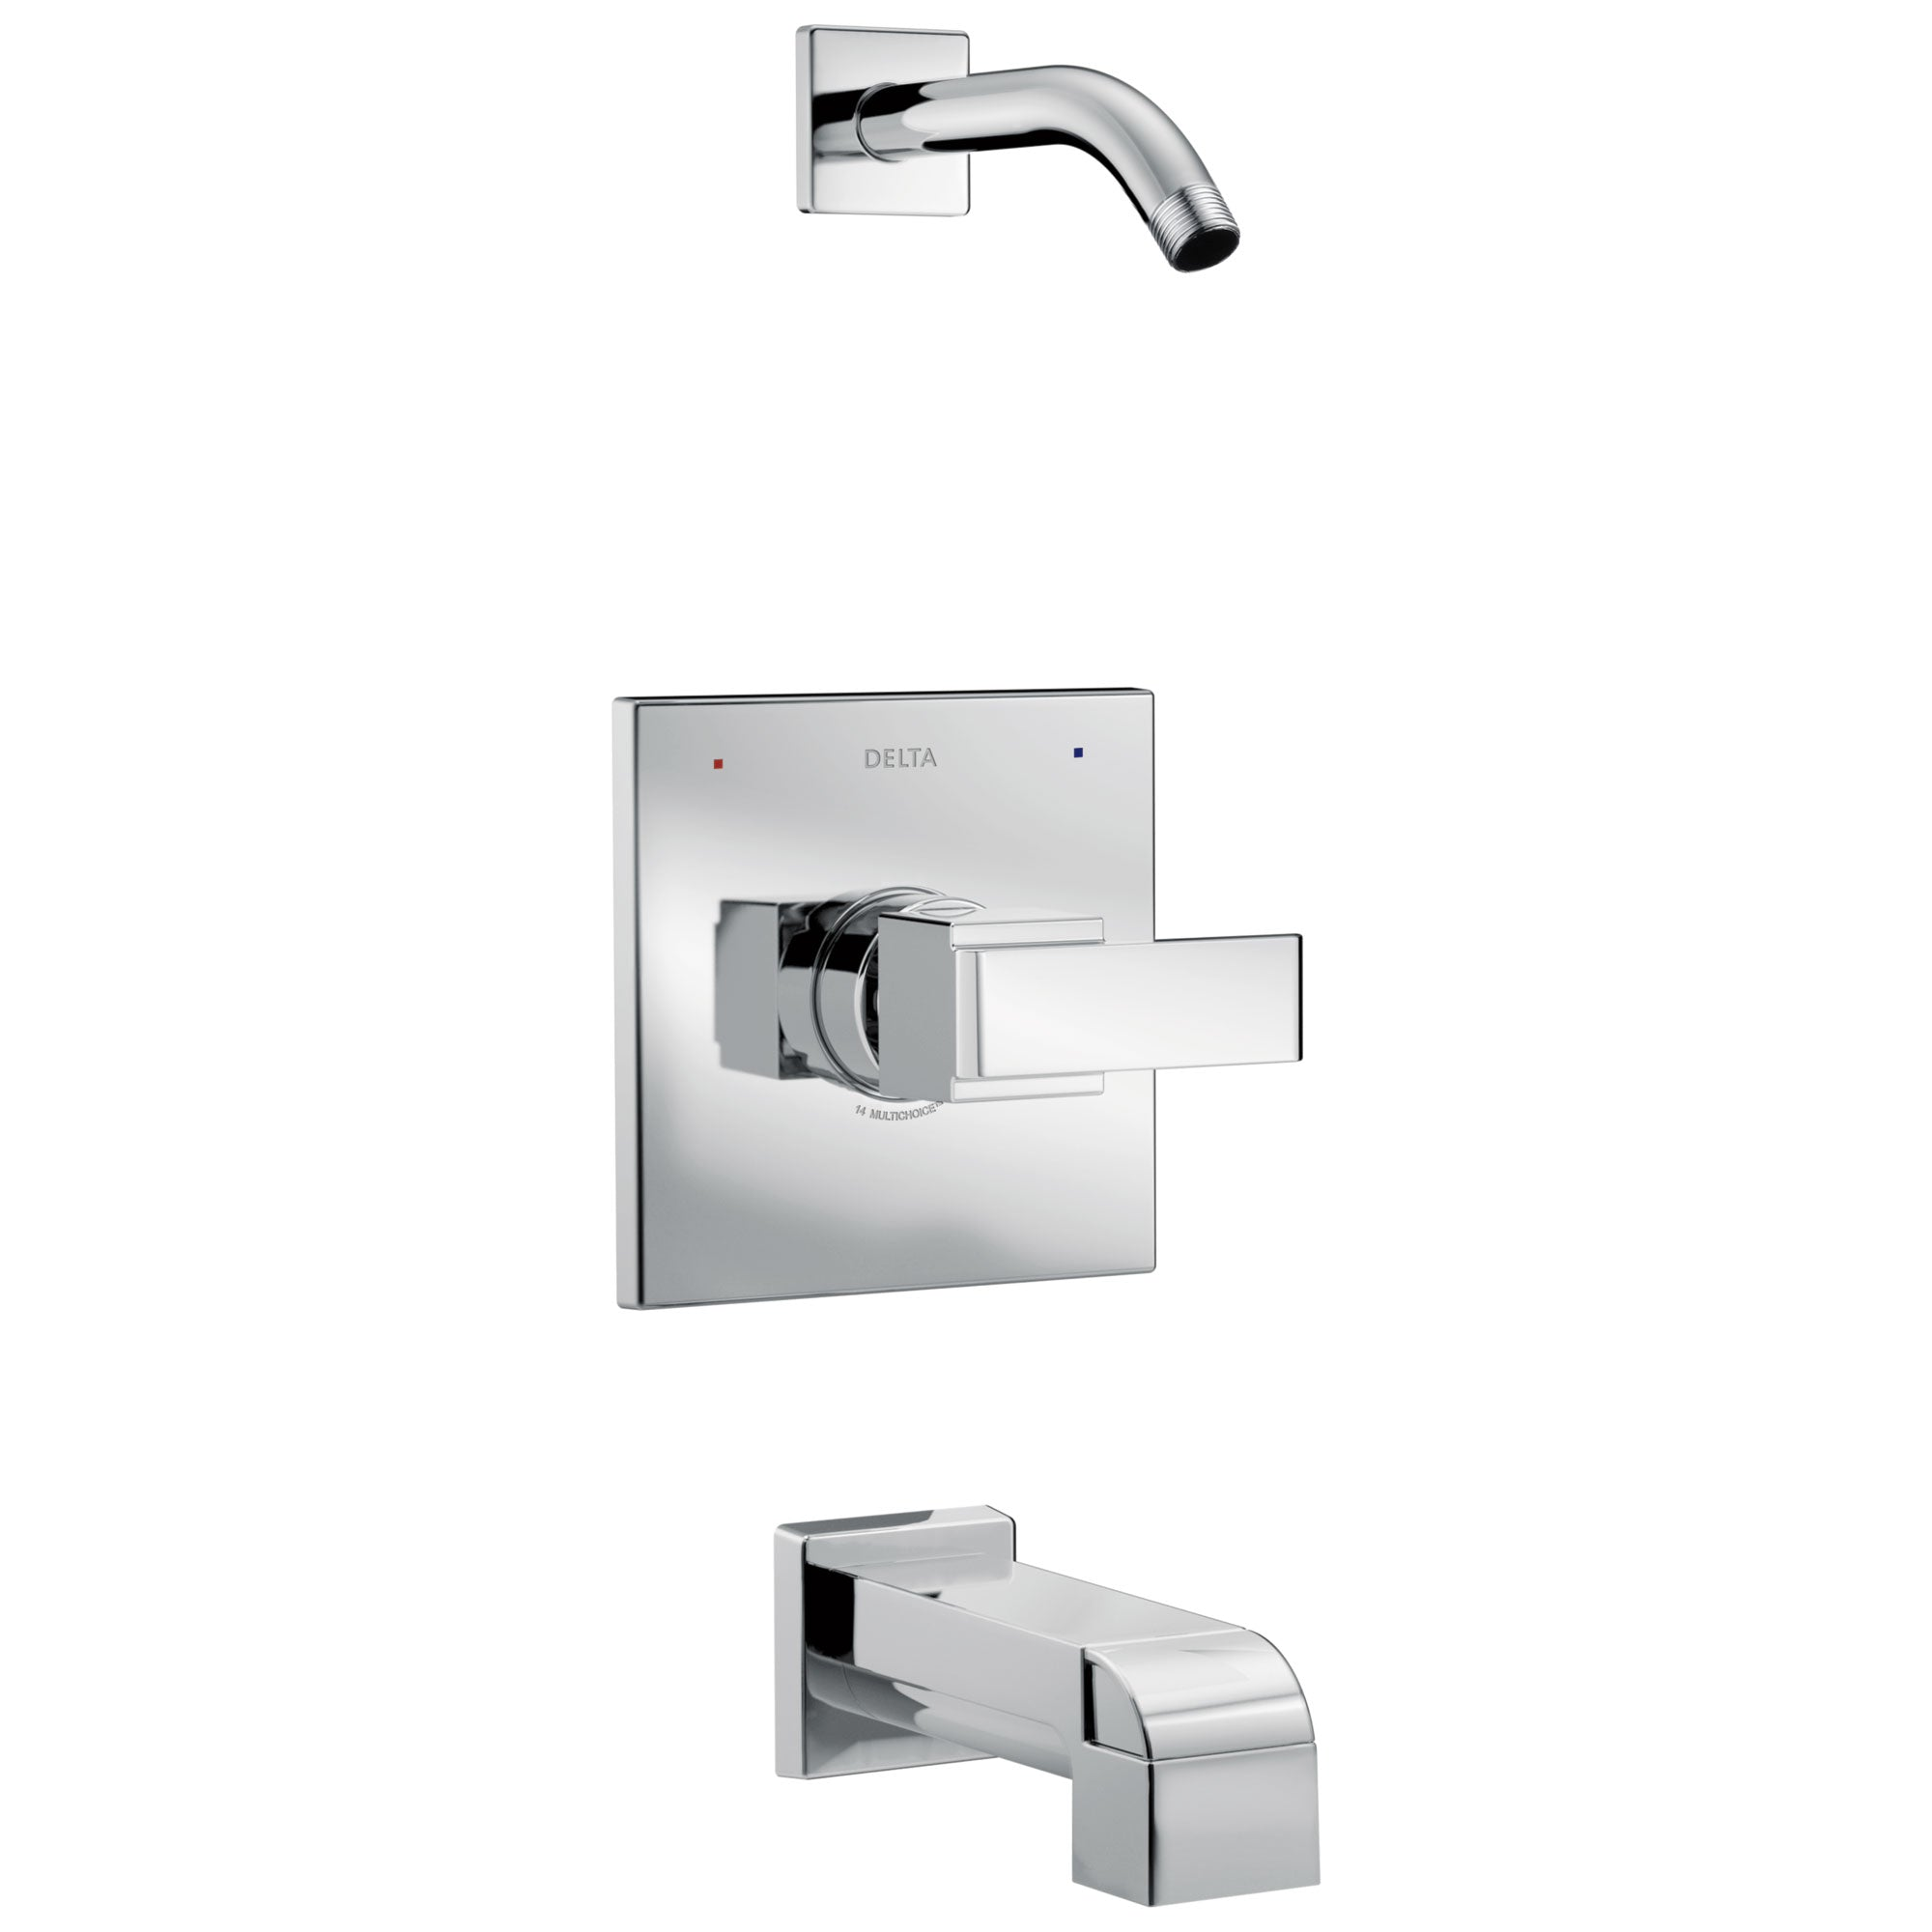 Delta Ara Collection Chrome Monitor 14 Series Modern Square Tub and Shower Combination Faucet - Less Showerhead Includes Trim Kit Rough Valve without Stops D2379V